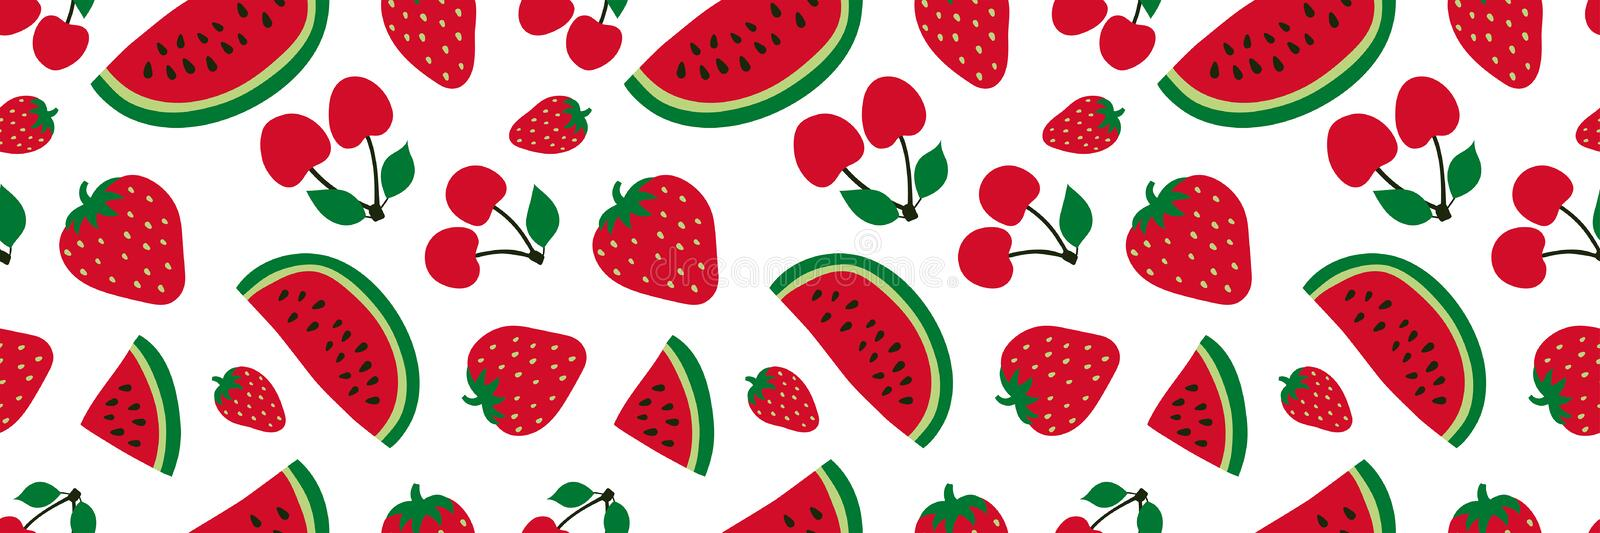 Watermelon, cherry and strawberry seamless pattern. Red berry. Sweet fruits. Fashion design. Food print for dress, textile, vector illustration